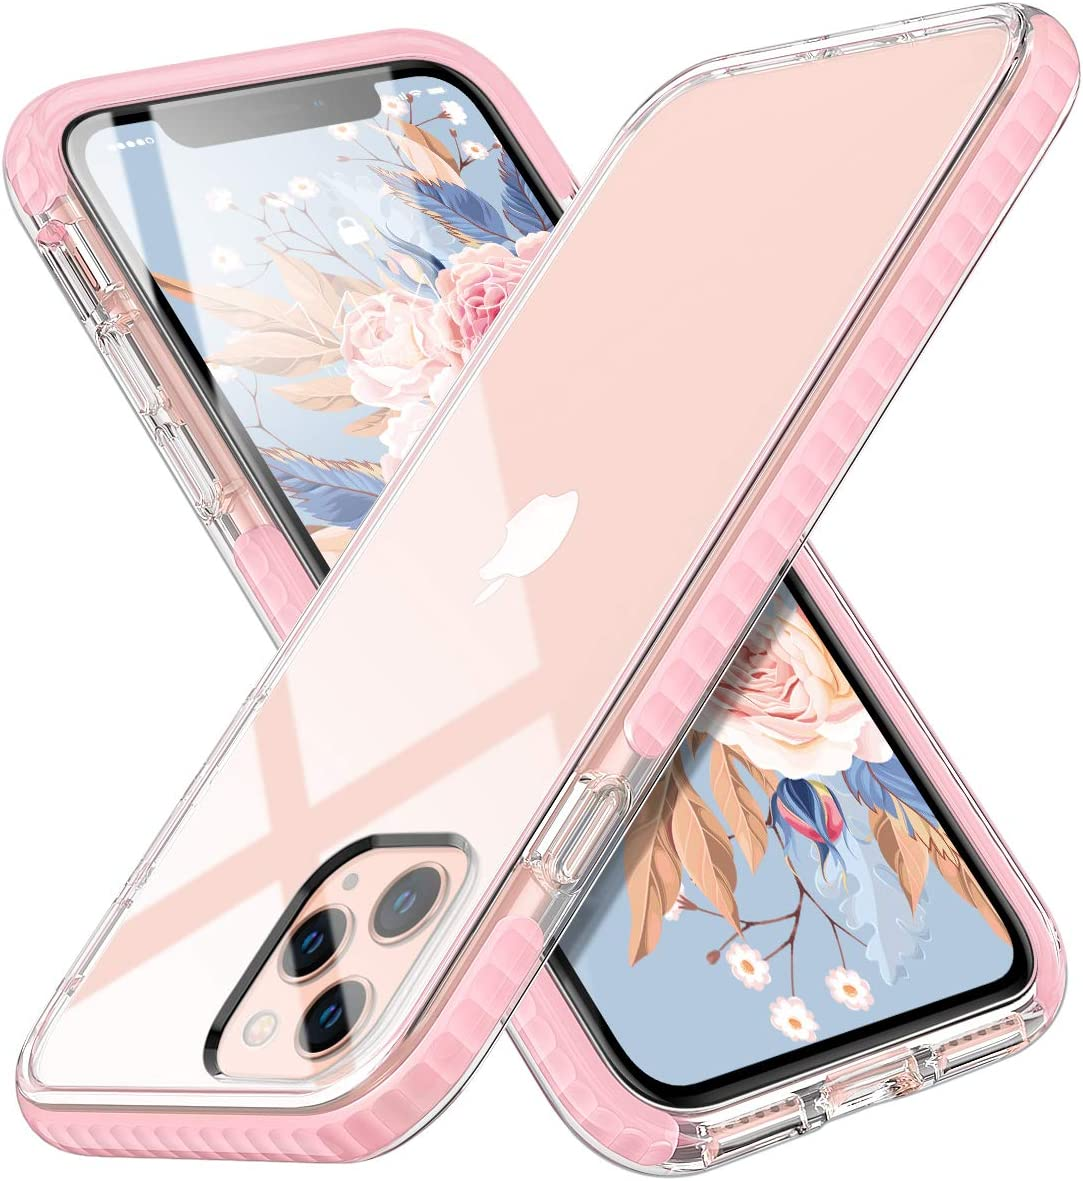 MATEPROX iPhone 11 Pro Case Clear Thin Slim Crystal Transparent Cover Shockproof Bumper Case for iPhone 11 Pro 5.8(Pink